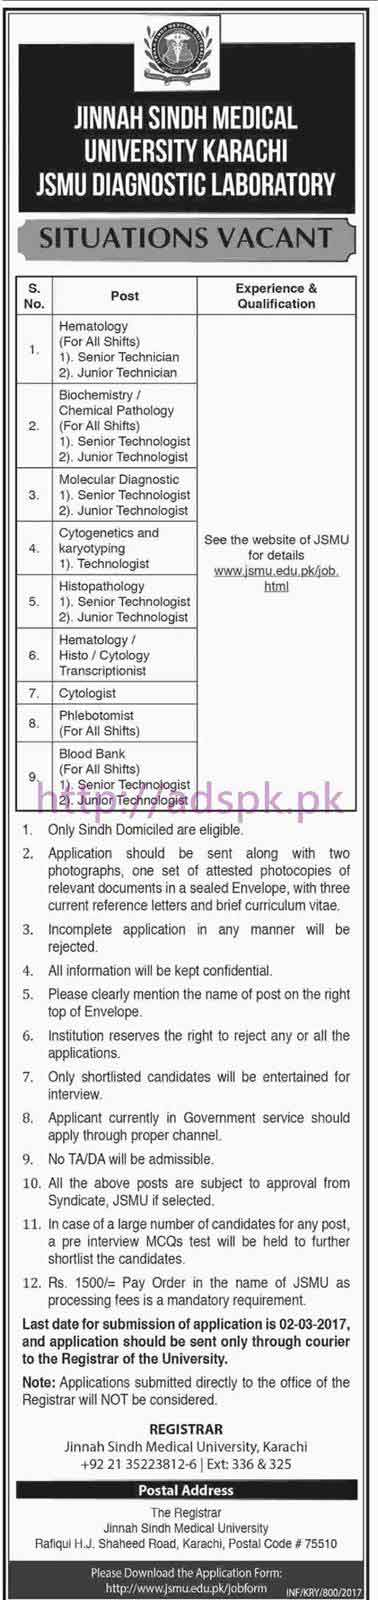 New Career Jobs Jinnah Sindh Medical University JSMU / Diagnostic Laboratory Karachi Jobs for Senior Junior Technicians Technologist Cytologist Phlebotomist / Teaching Faculty Professors Lecturers and Non-Teaching Staff Application Deadline 02-03-2017 Apply Now